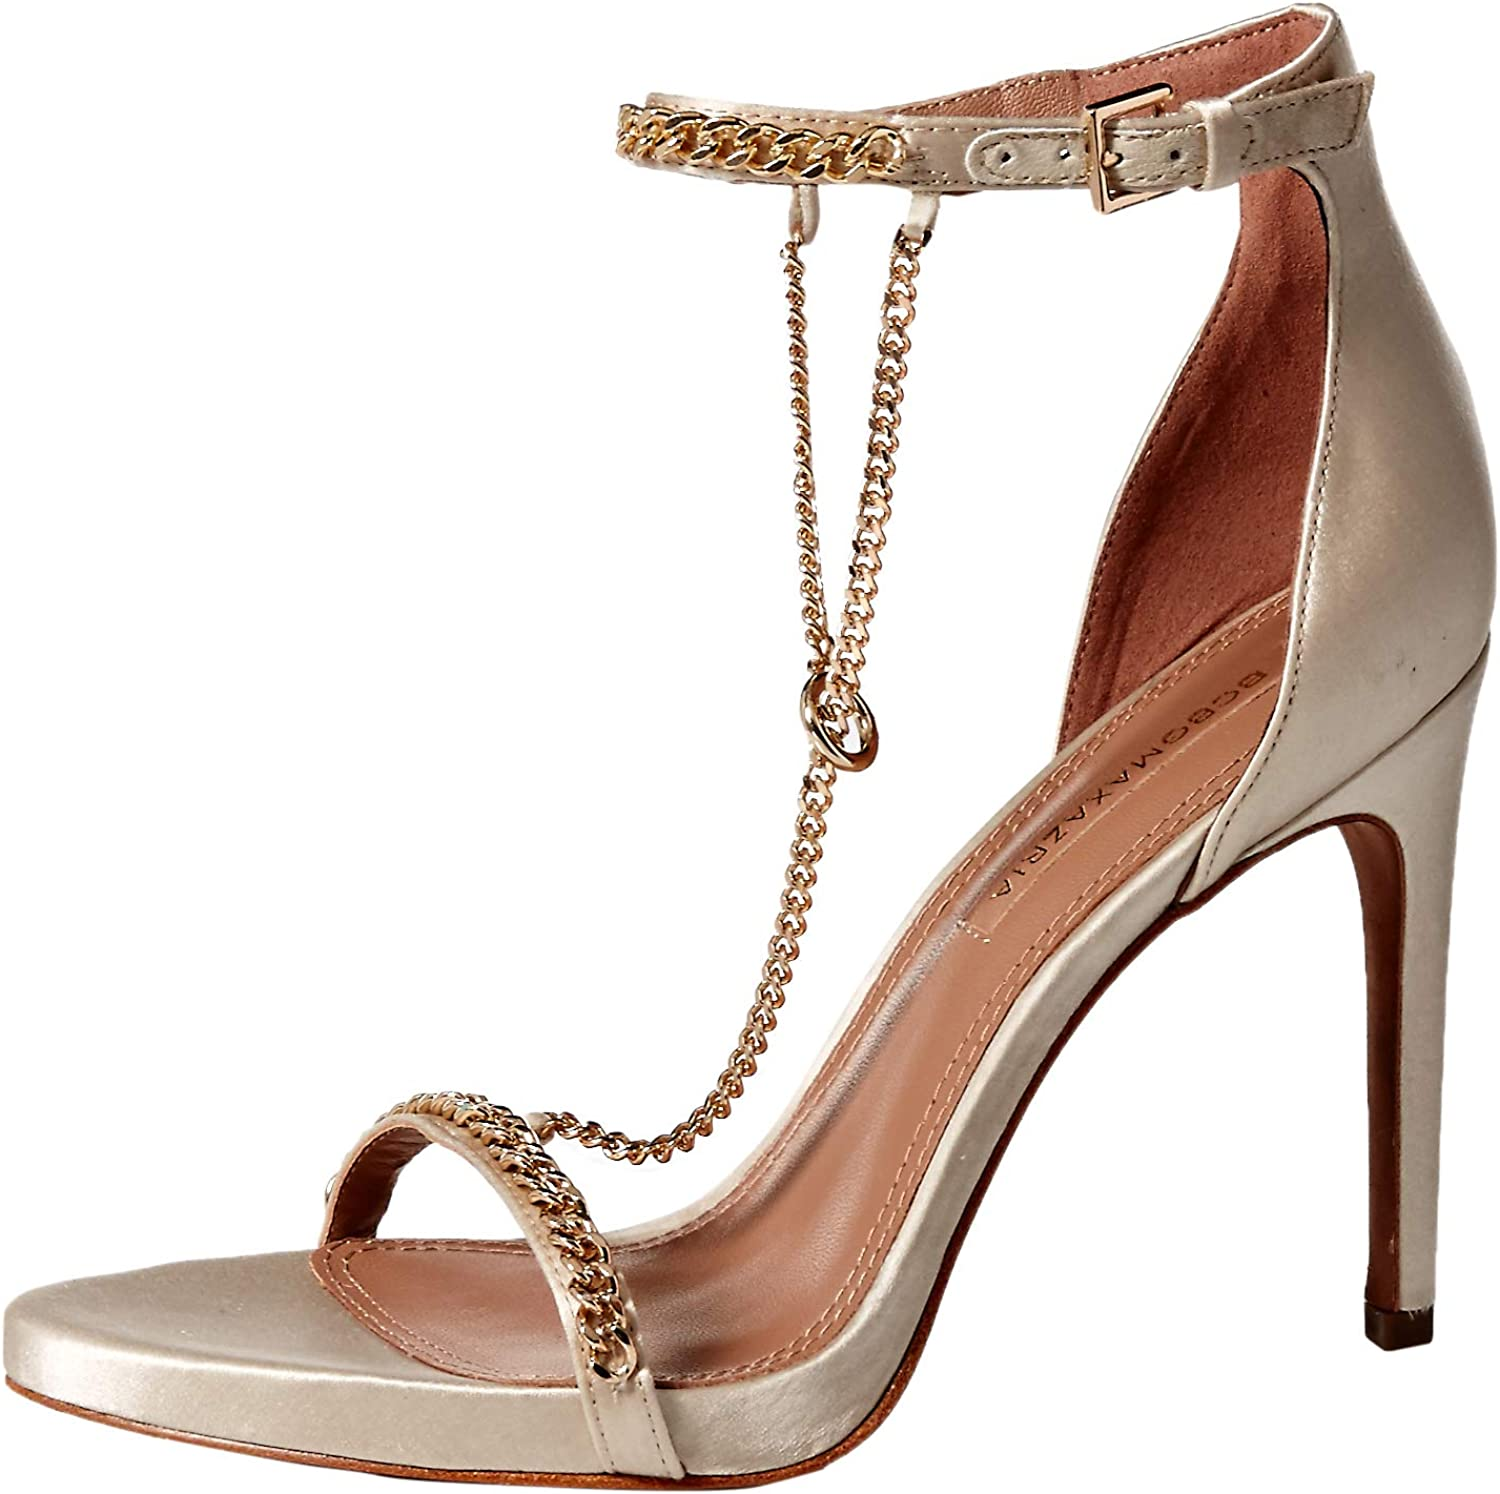 BCBGMAXAZRIA Womens Ella Dress Sandal Heeled Sandal